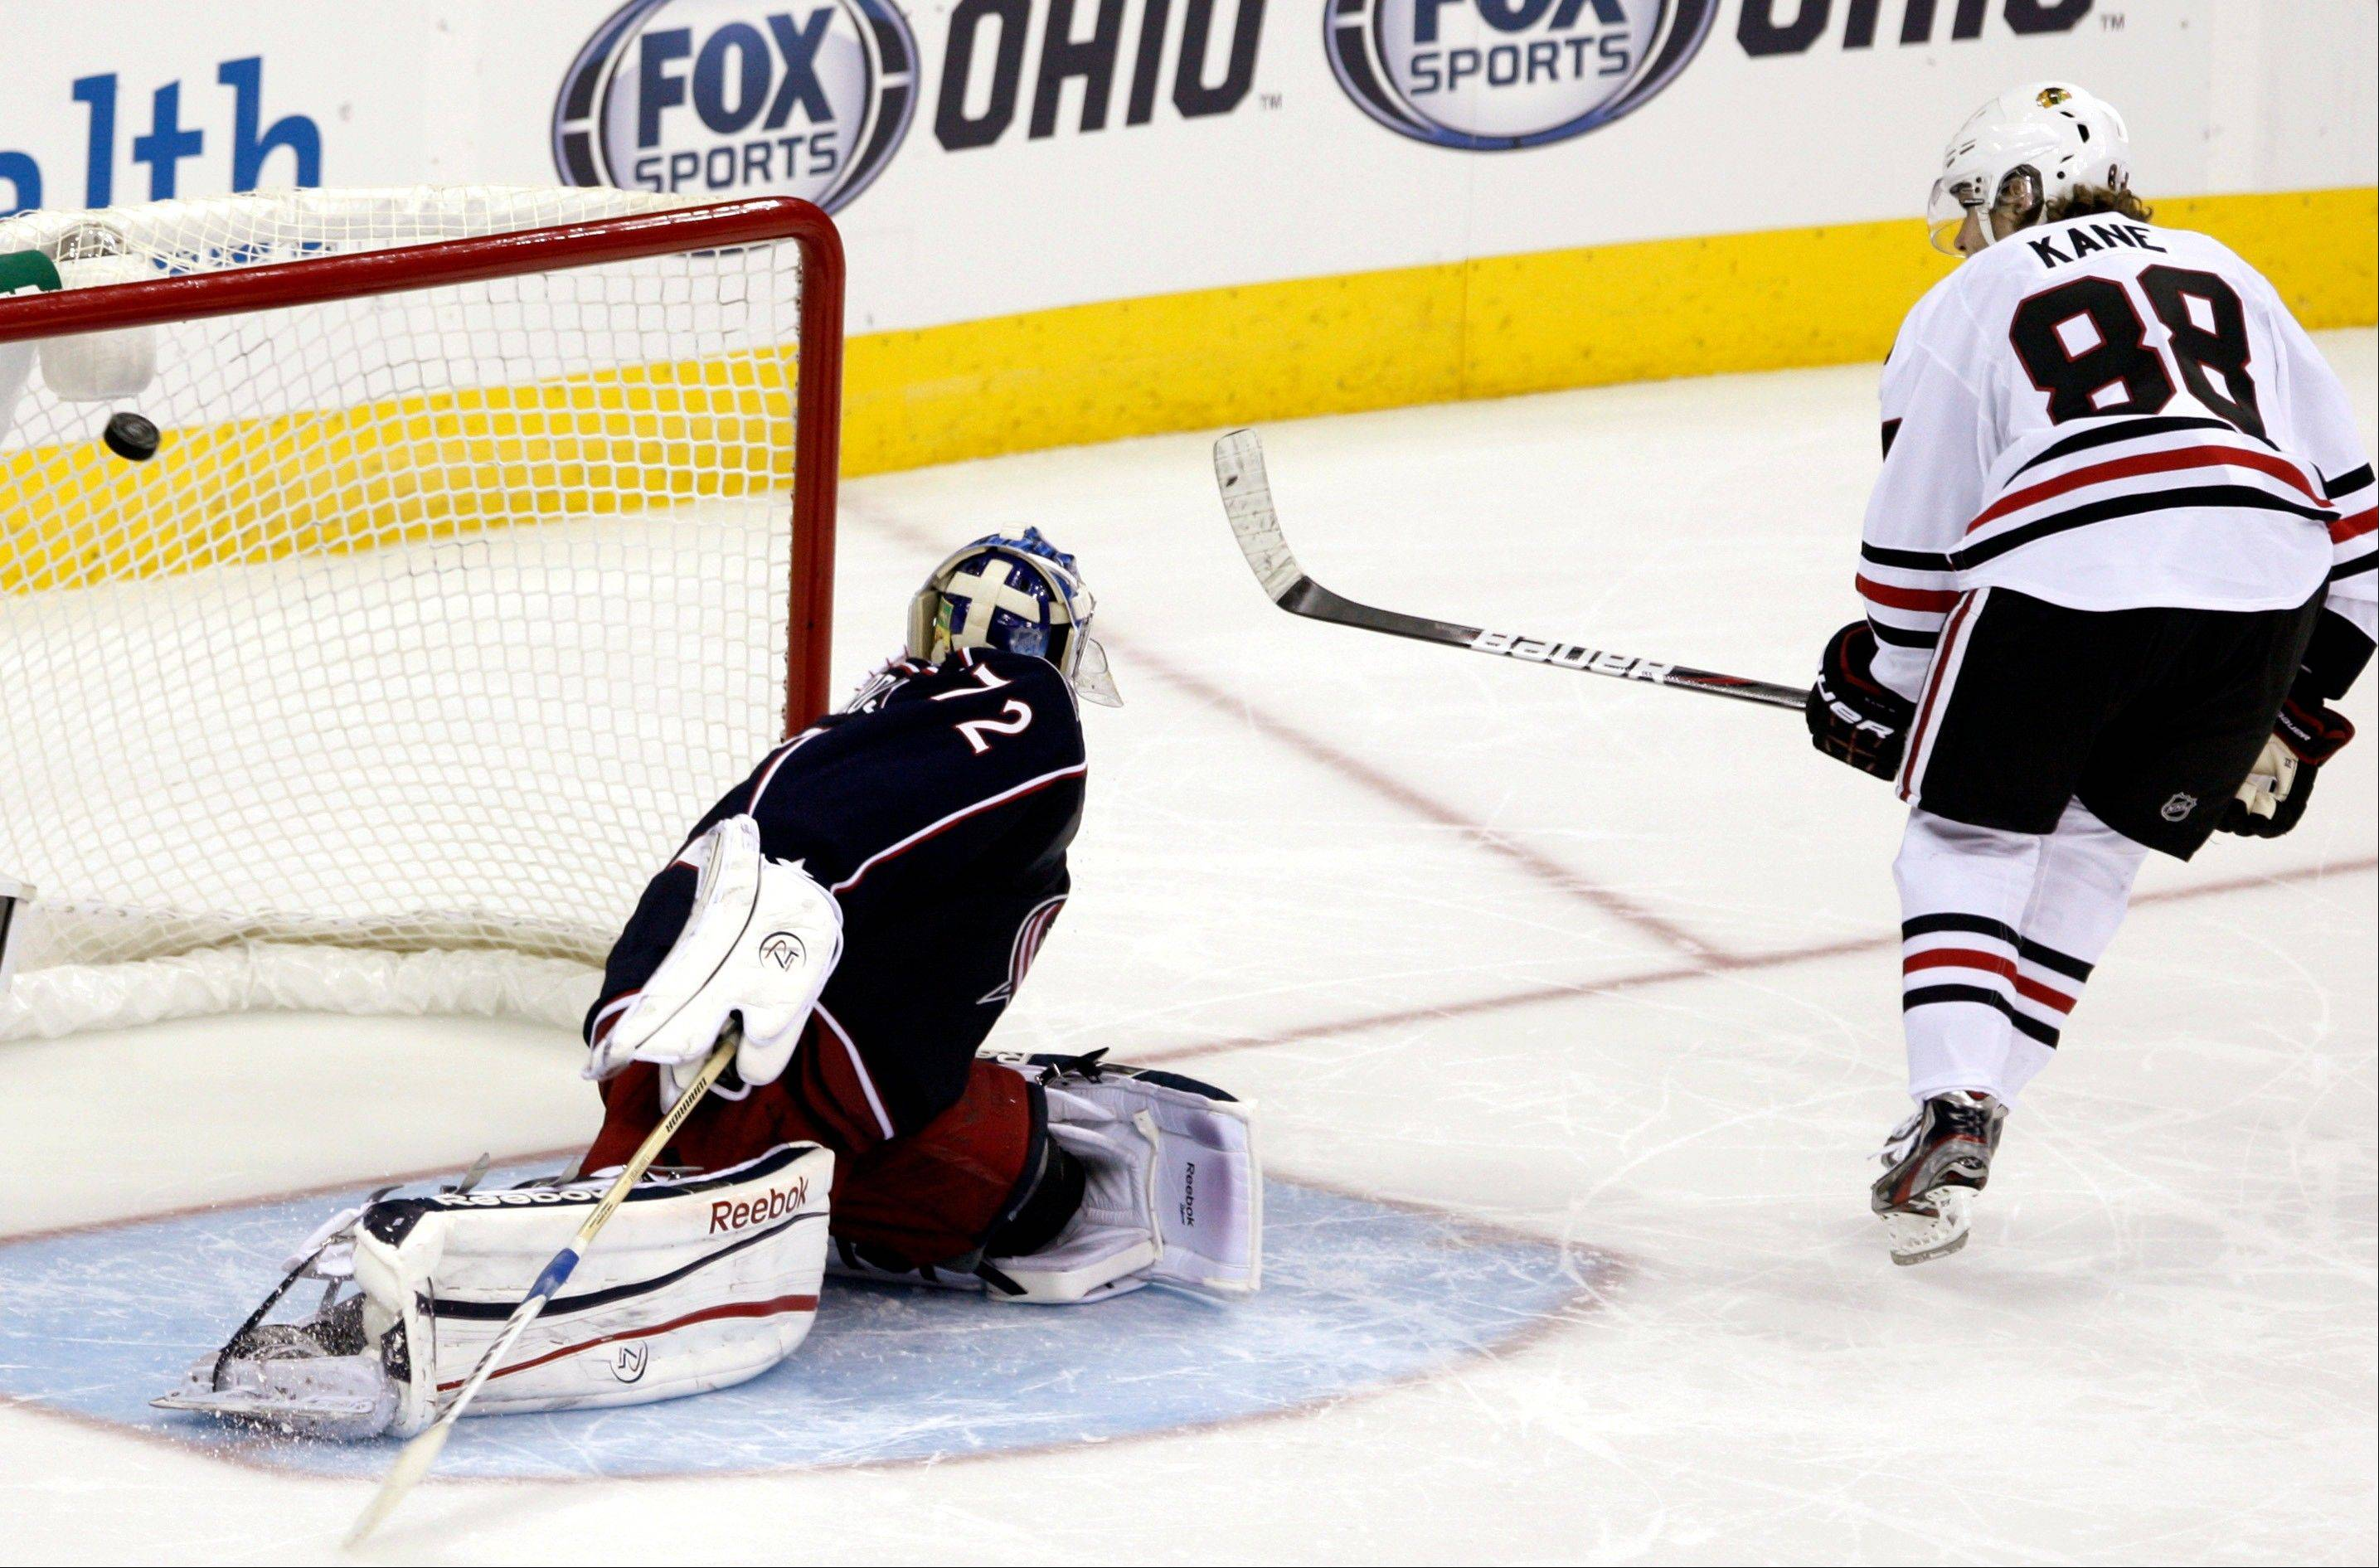 Chicago Blackhawks' Patrick Kane, right, scores against Columbus Blue Jackets' Sergi Bobrovsky, of Russia, in the shootout.